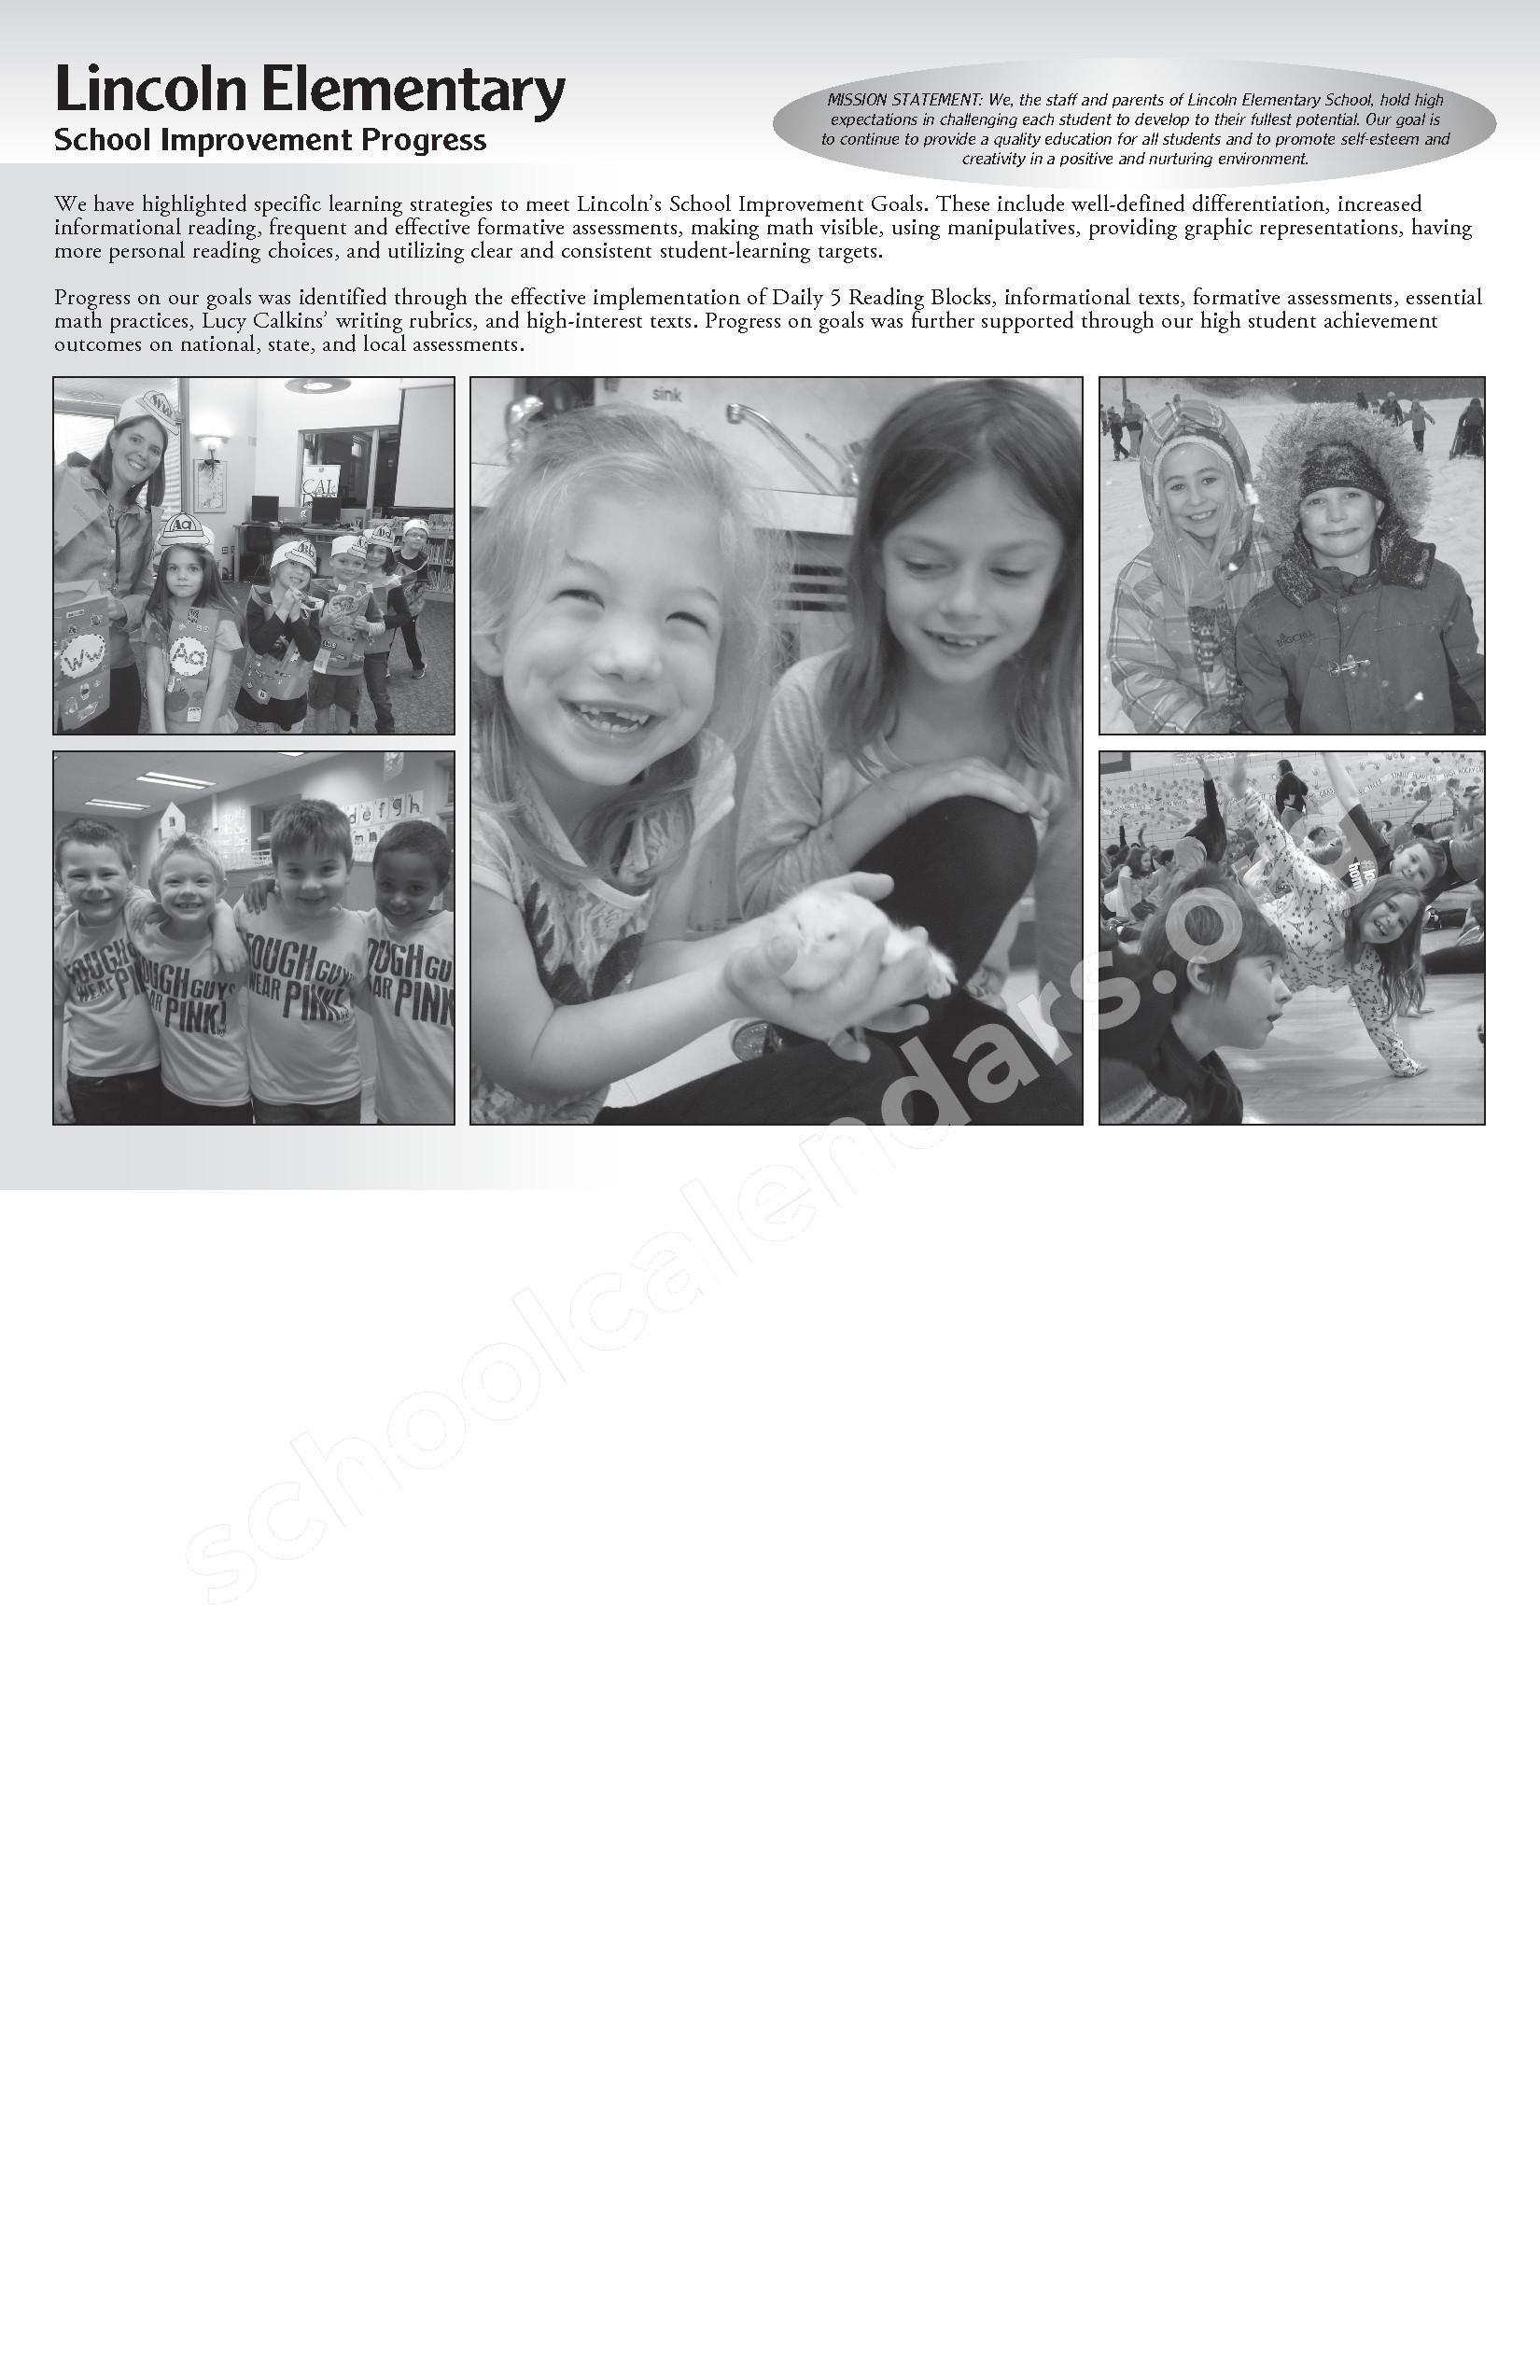 Annual Report & Calendar – Public Schools of Petoskey – page 16